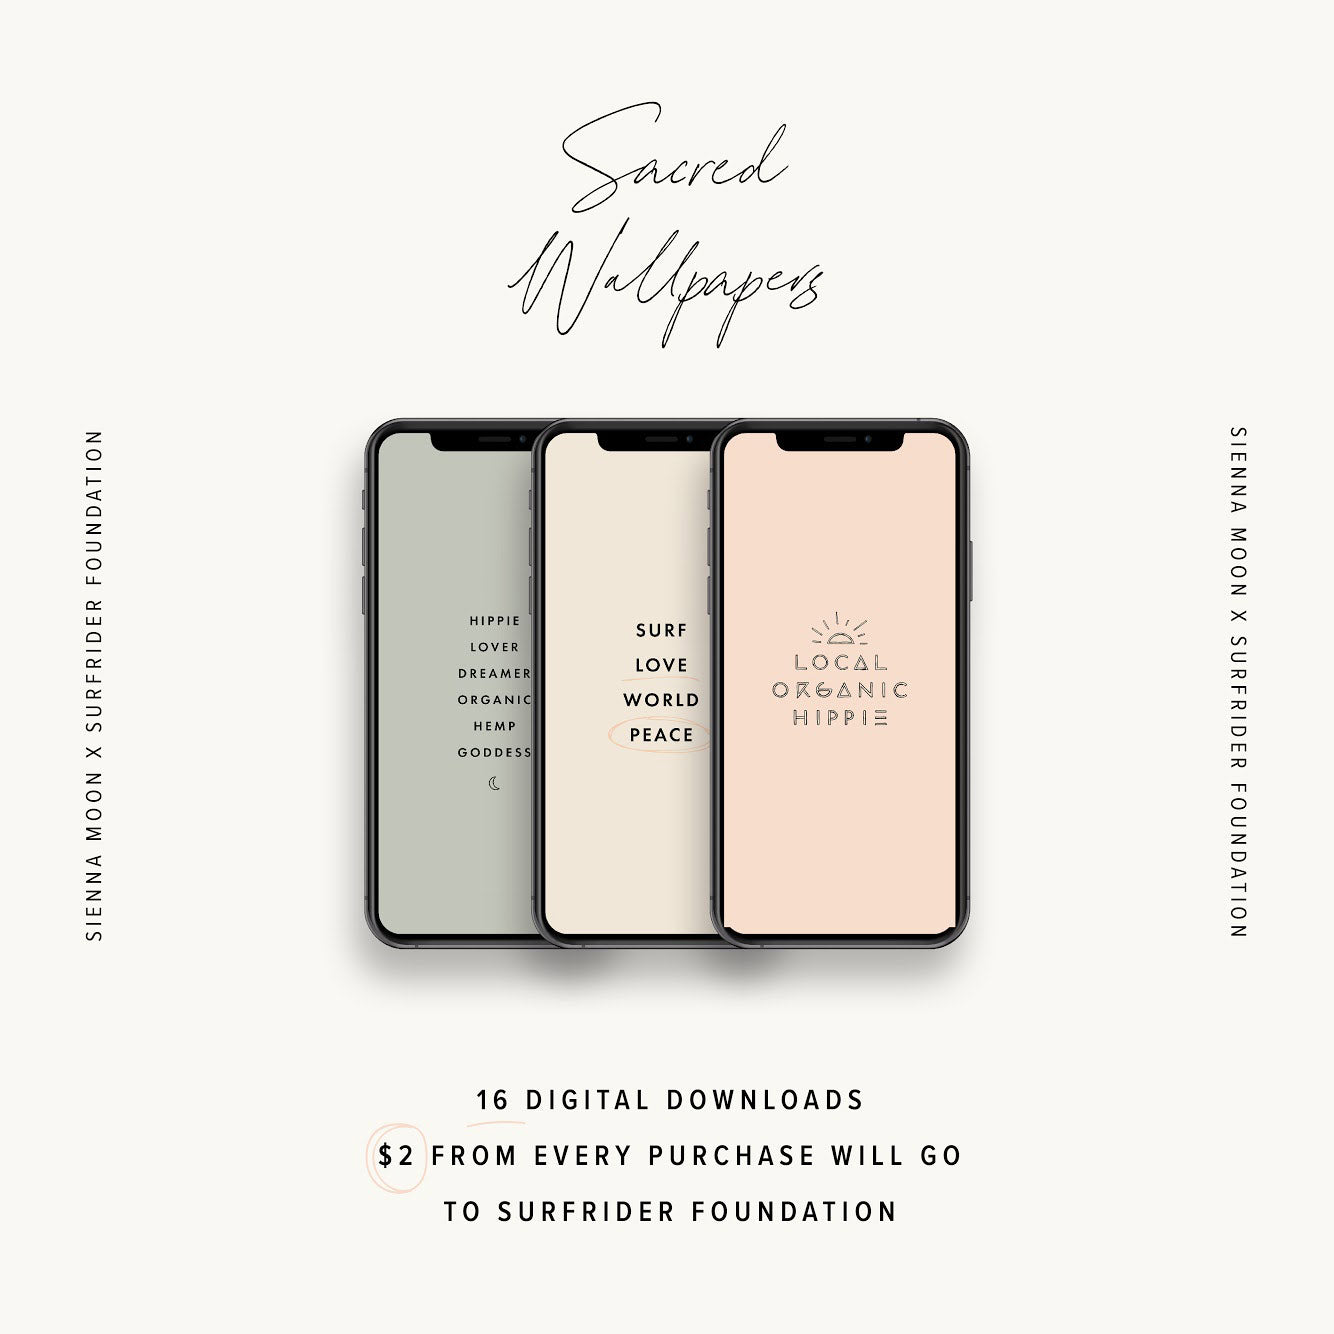 Sacred iPhone Wallpapers | Sienna Moon x Surfrider Foundation